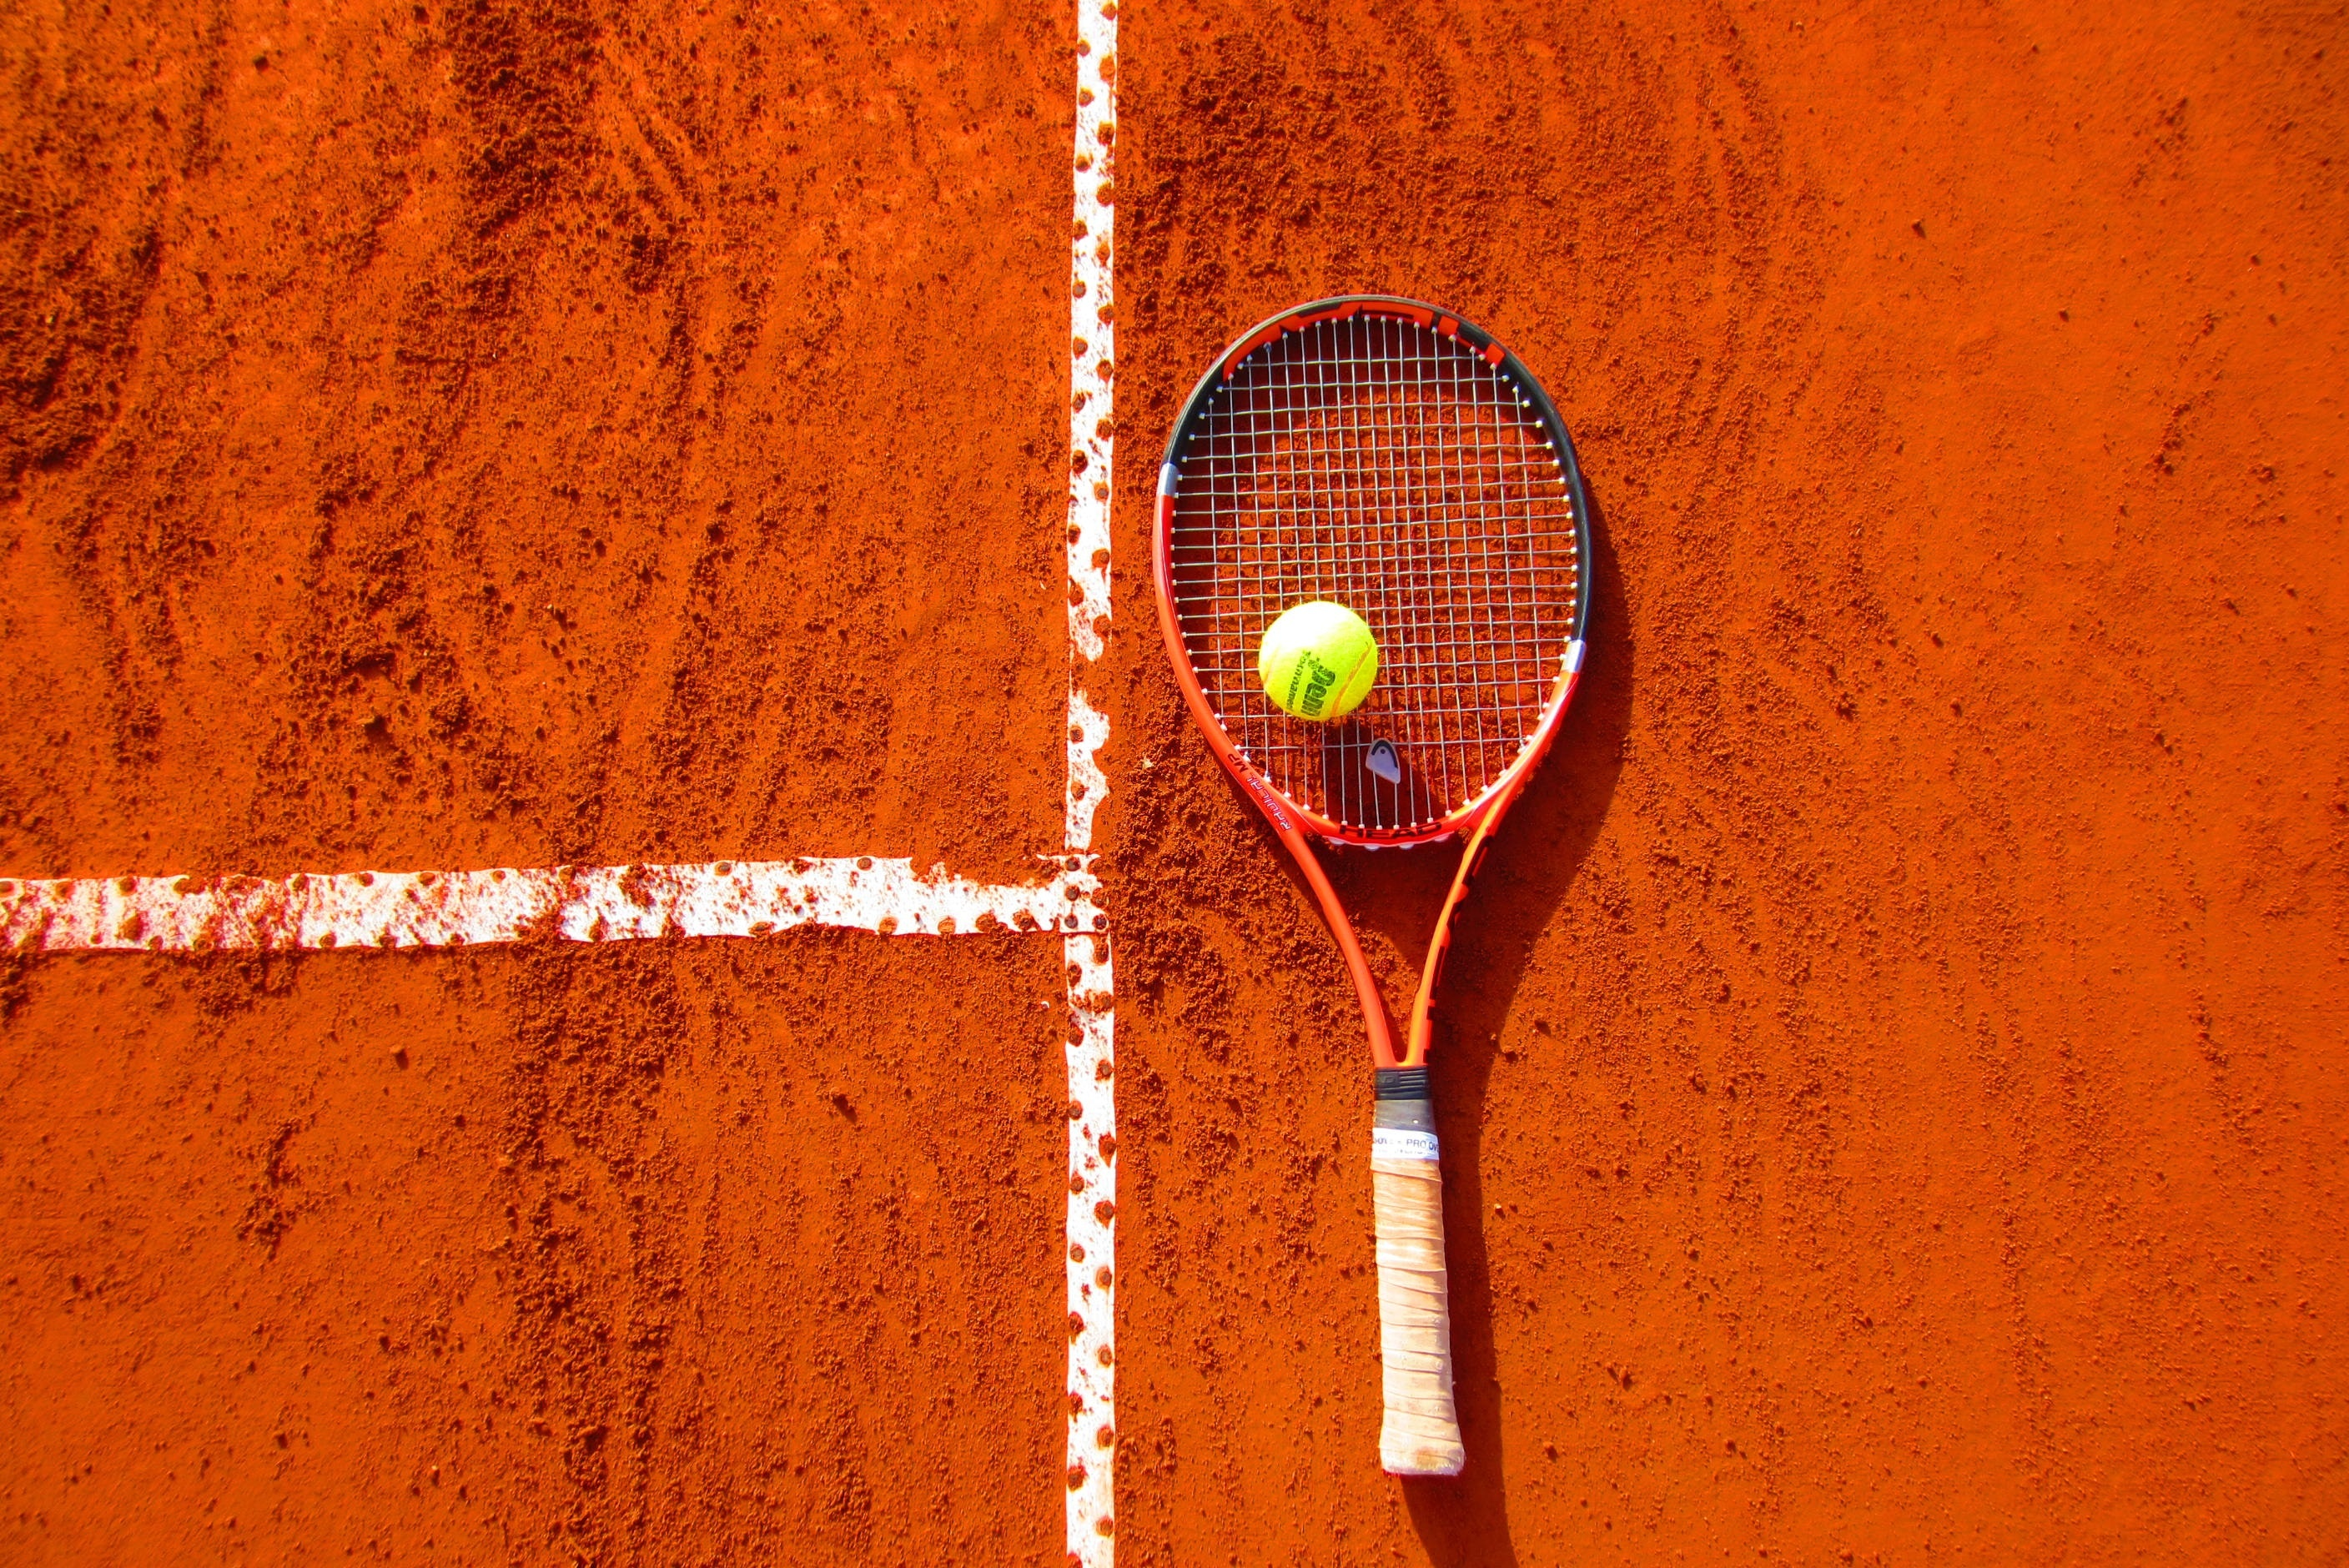 What are the Best Lens Colors for Tennis? | Tennis Lens Guide